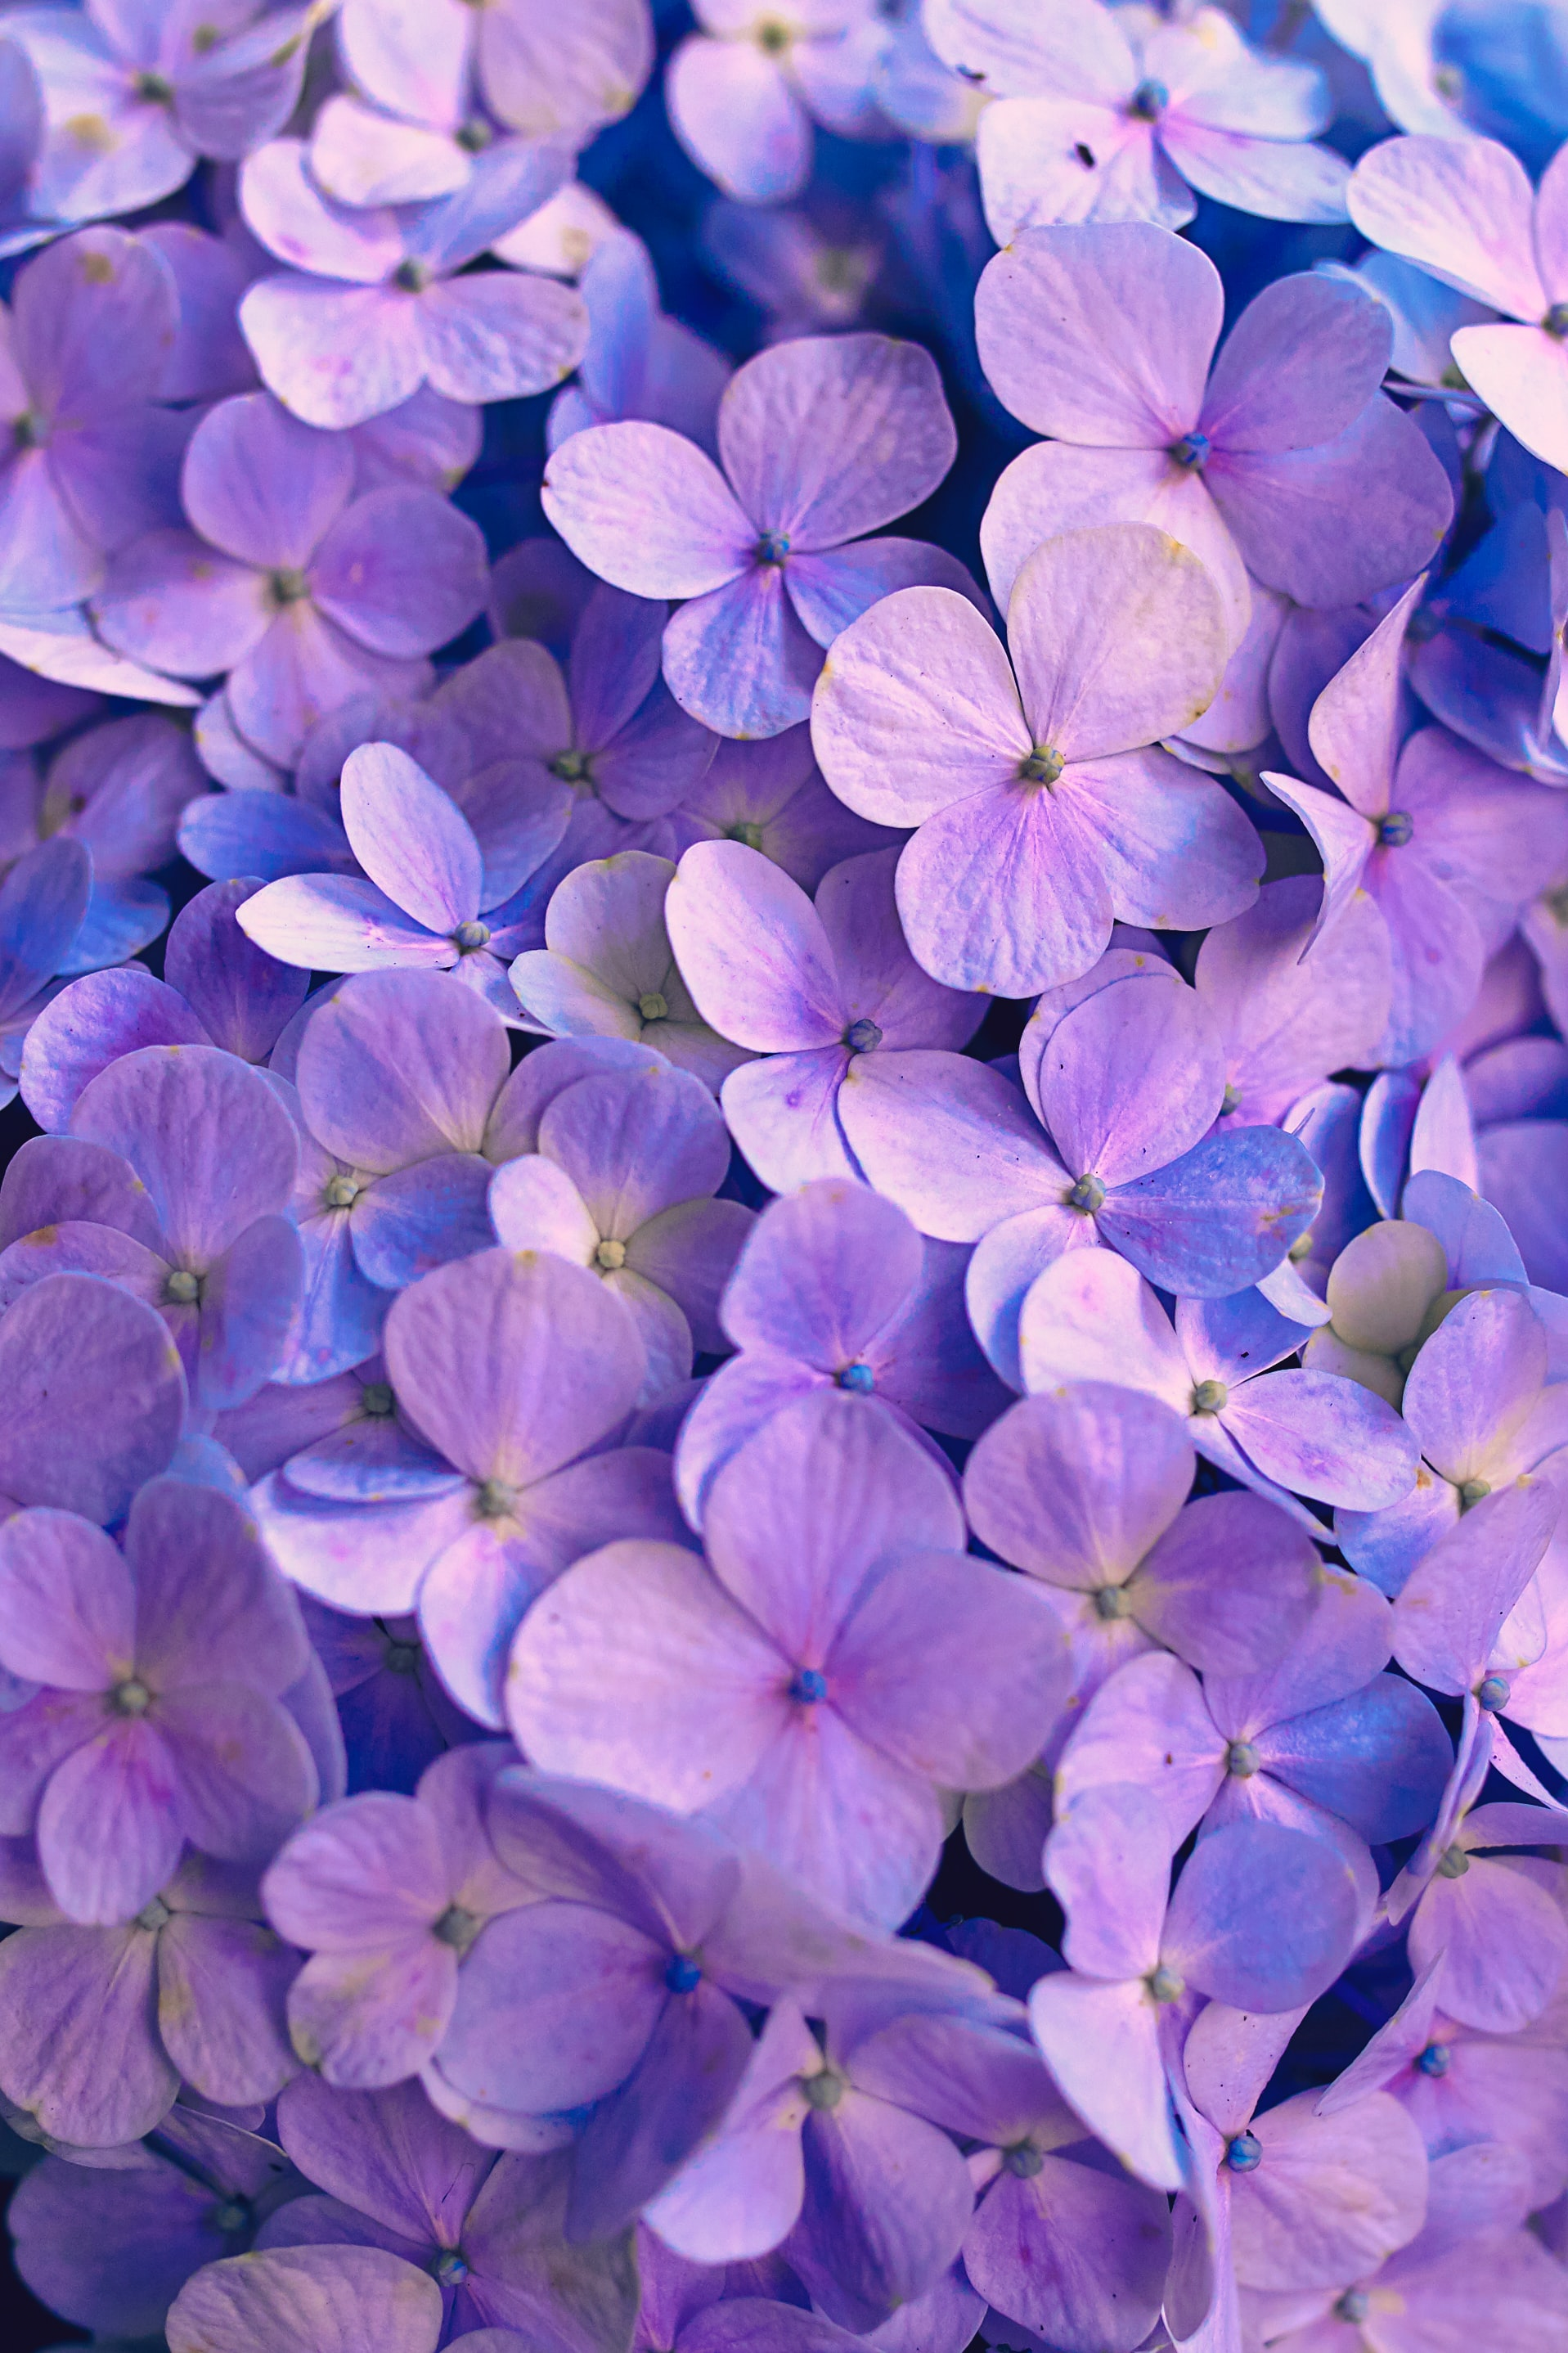 Download free Petals HD pictures